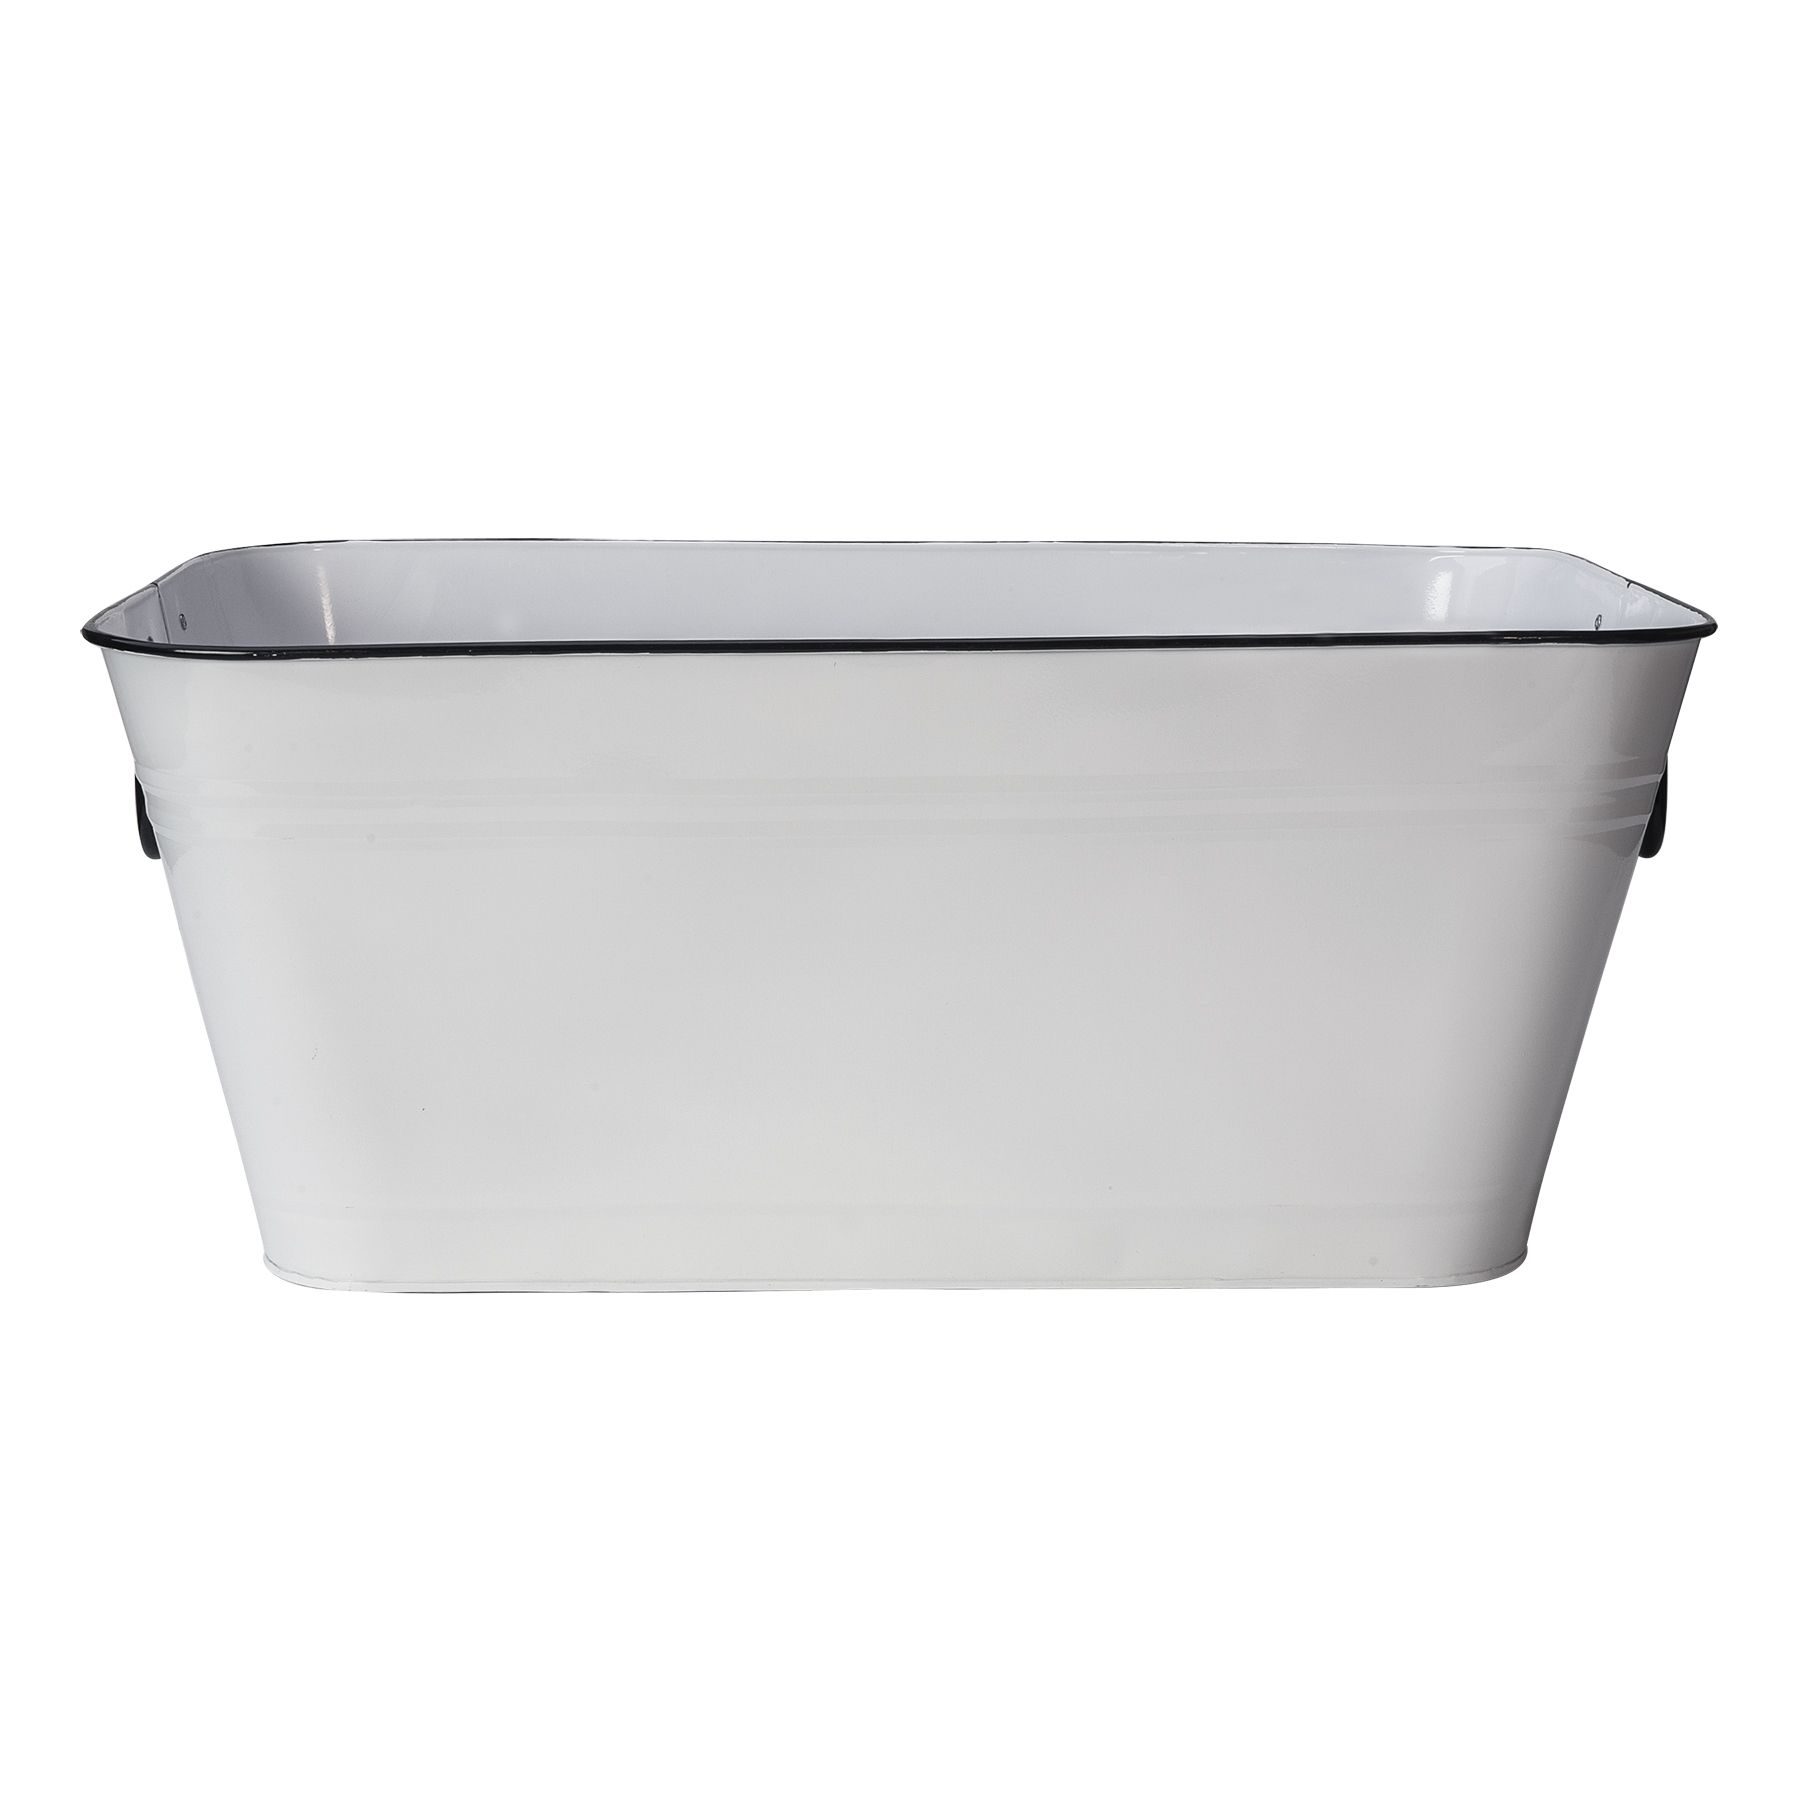 e13a7af2a0b5420779e18044b5c3298f - Better Homes And Gardens Tin Tub